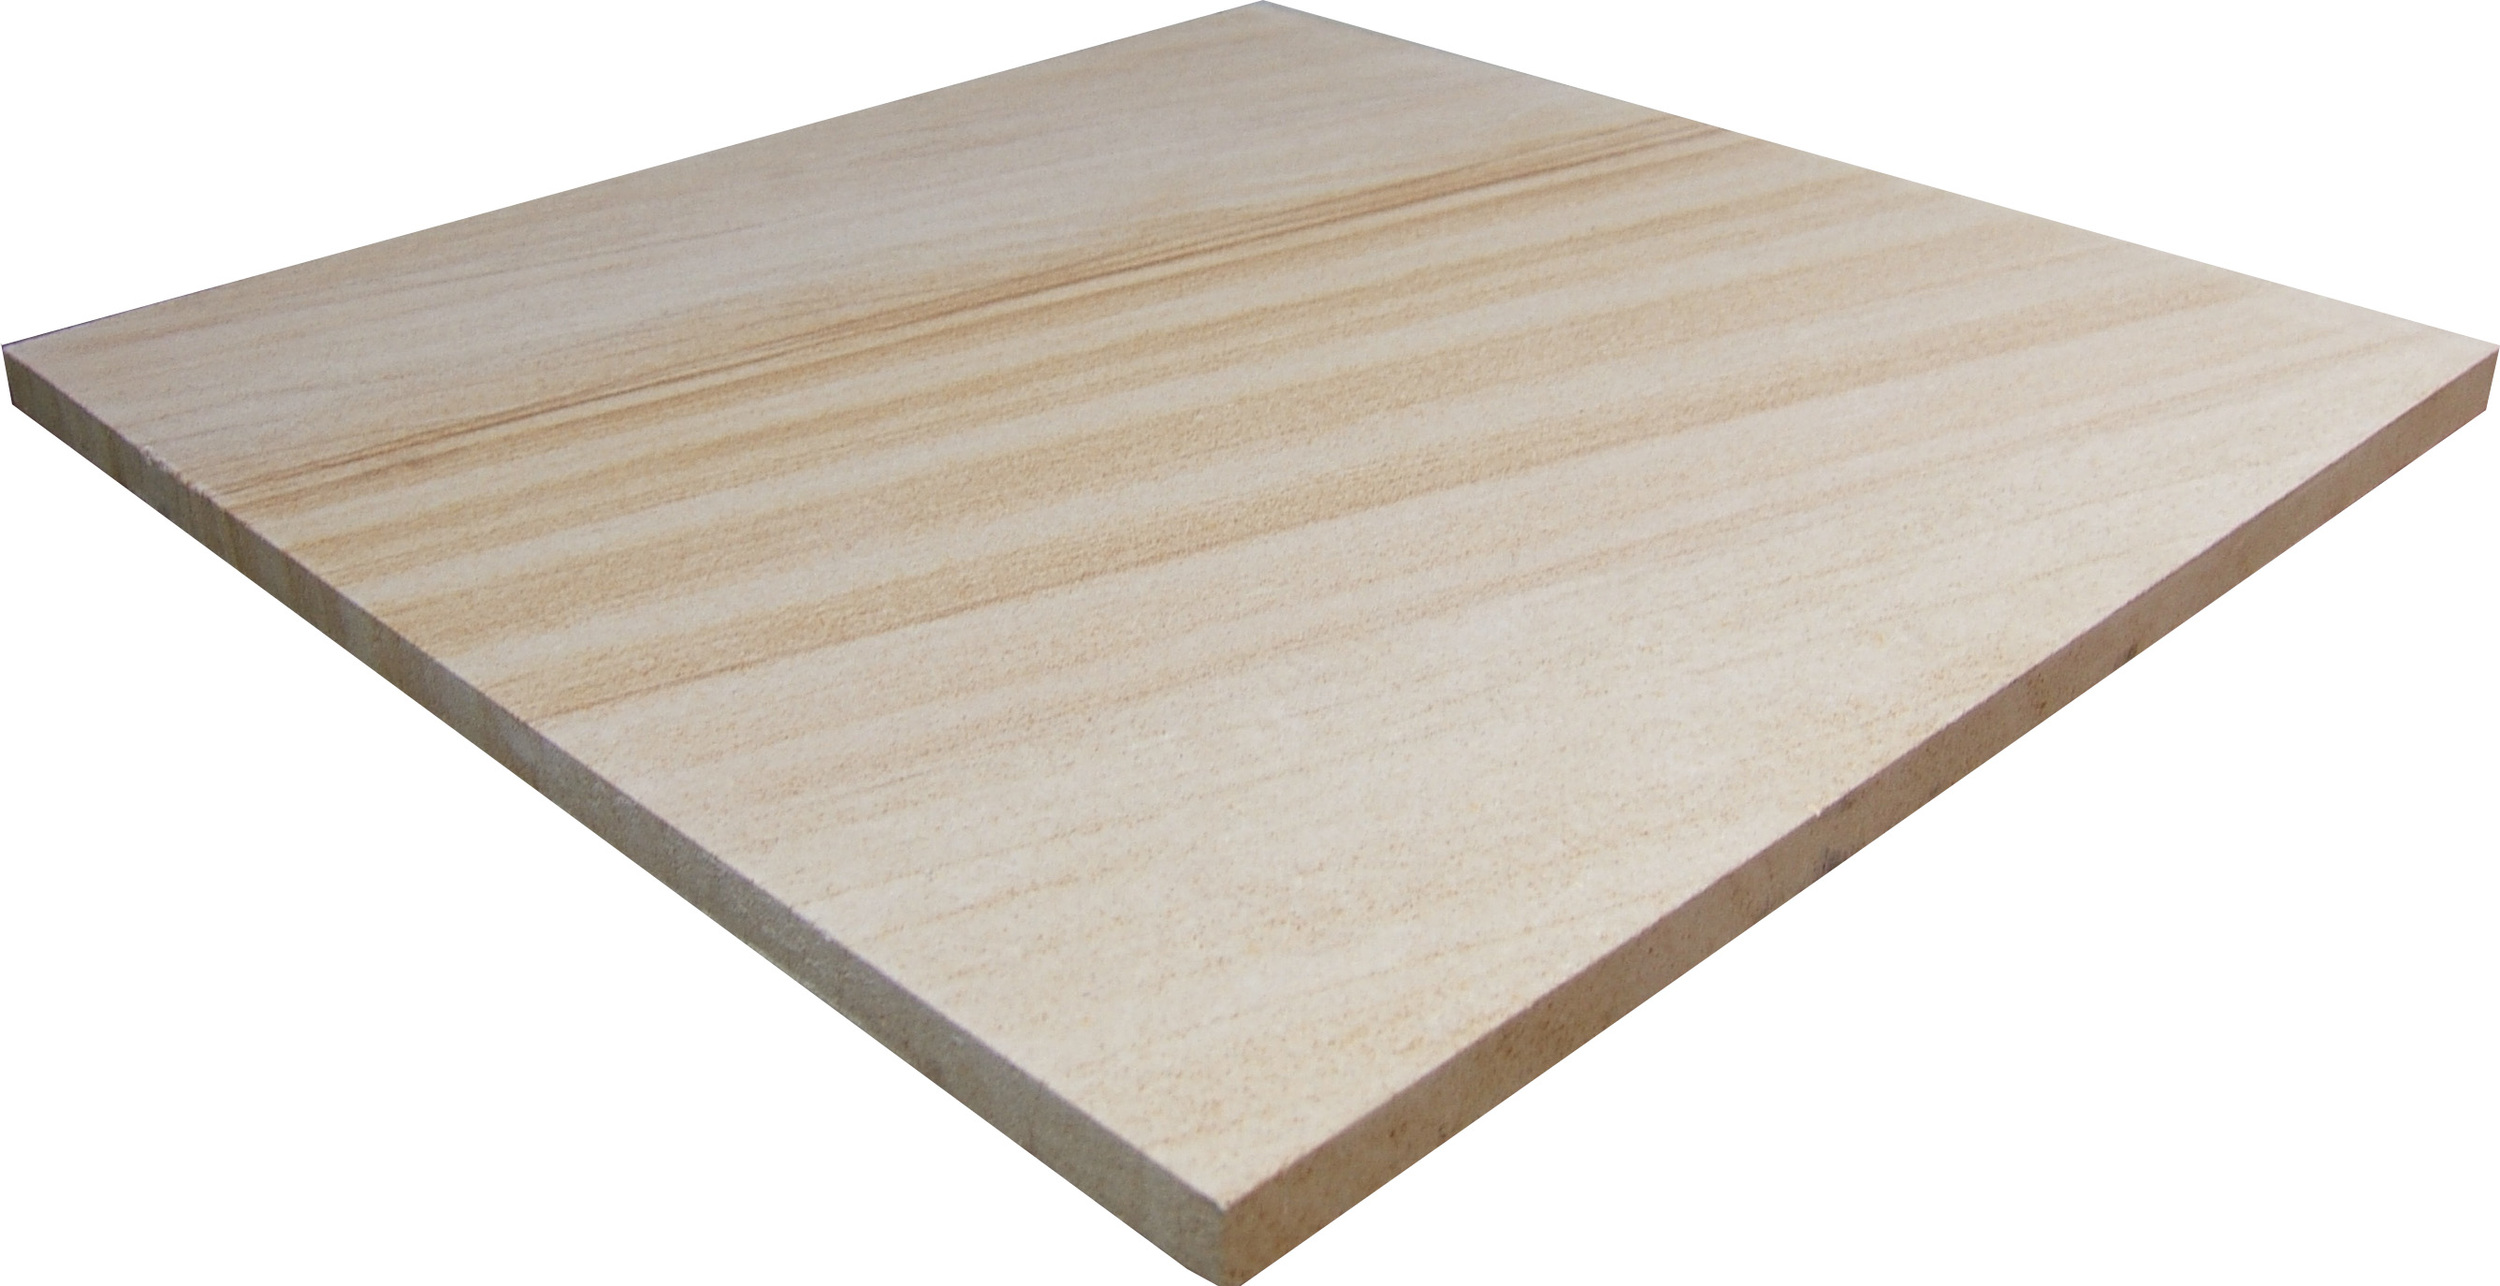 Coogee Tile - Sawn 400x400x15mm